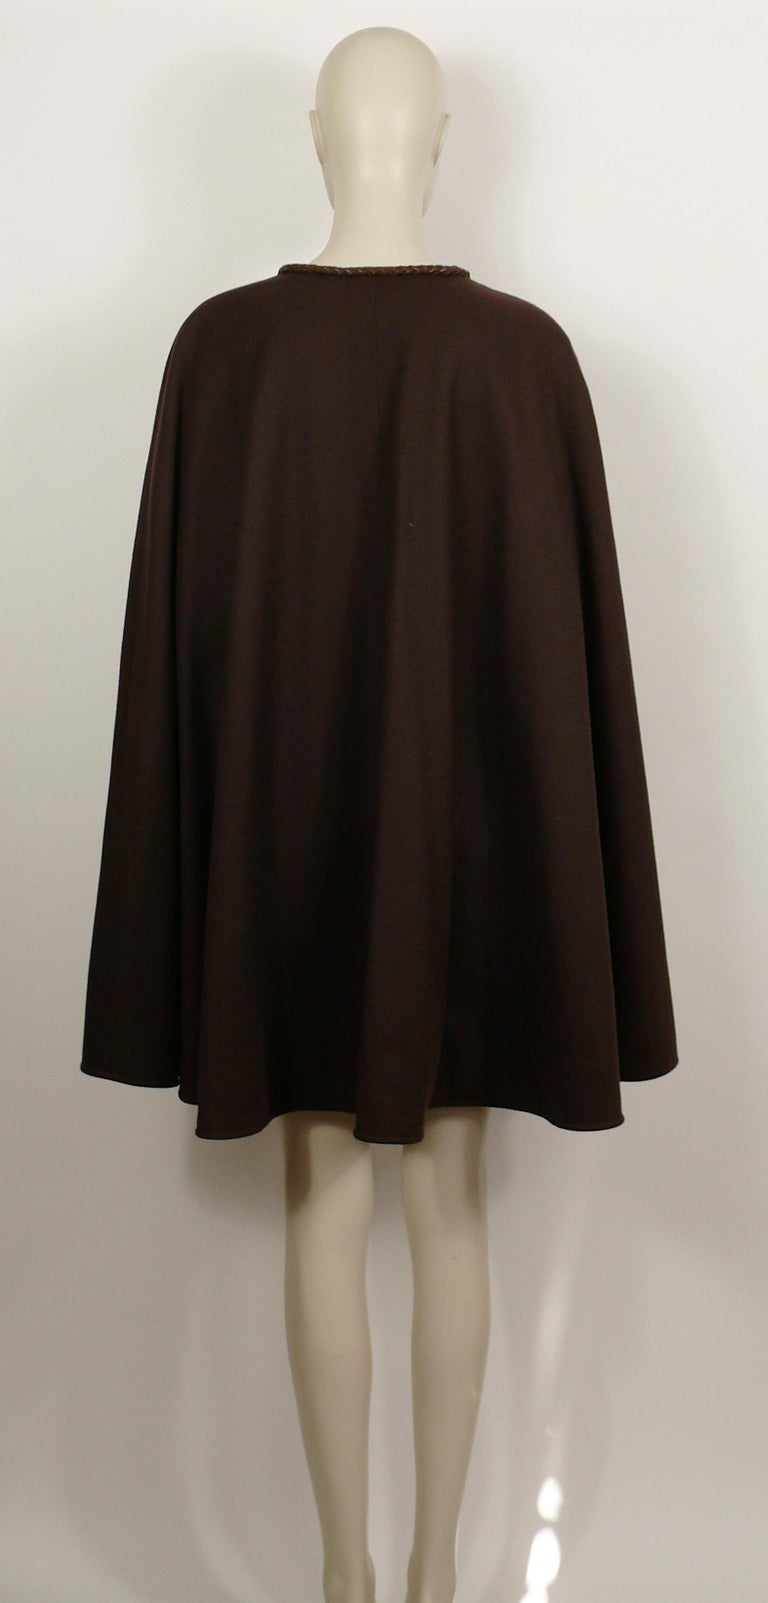 Yves Saint Laurent Rive Gauche Vintage Brown Cape with Leather Tassels For Sale 1